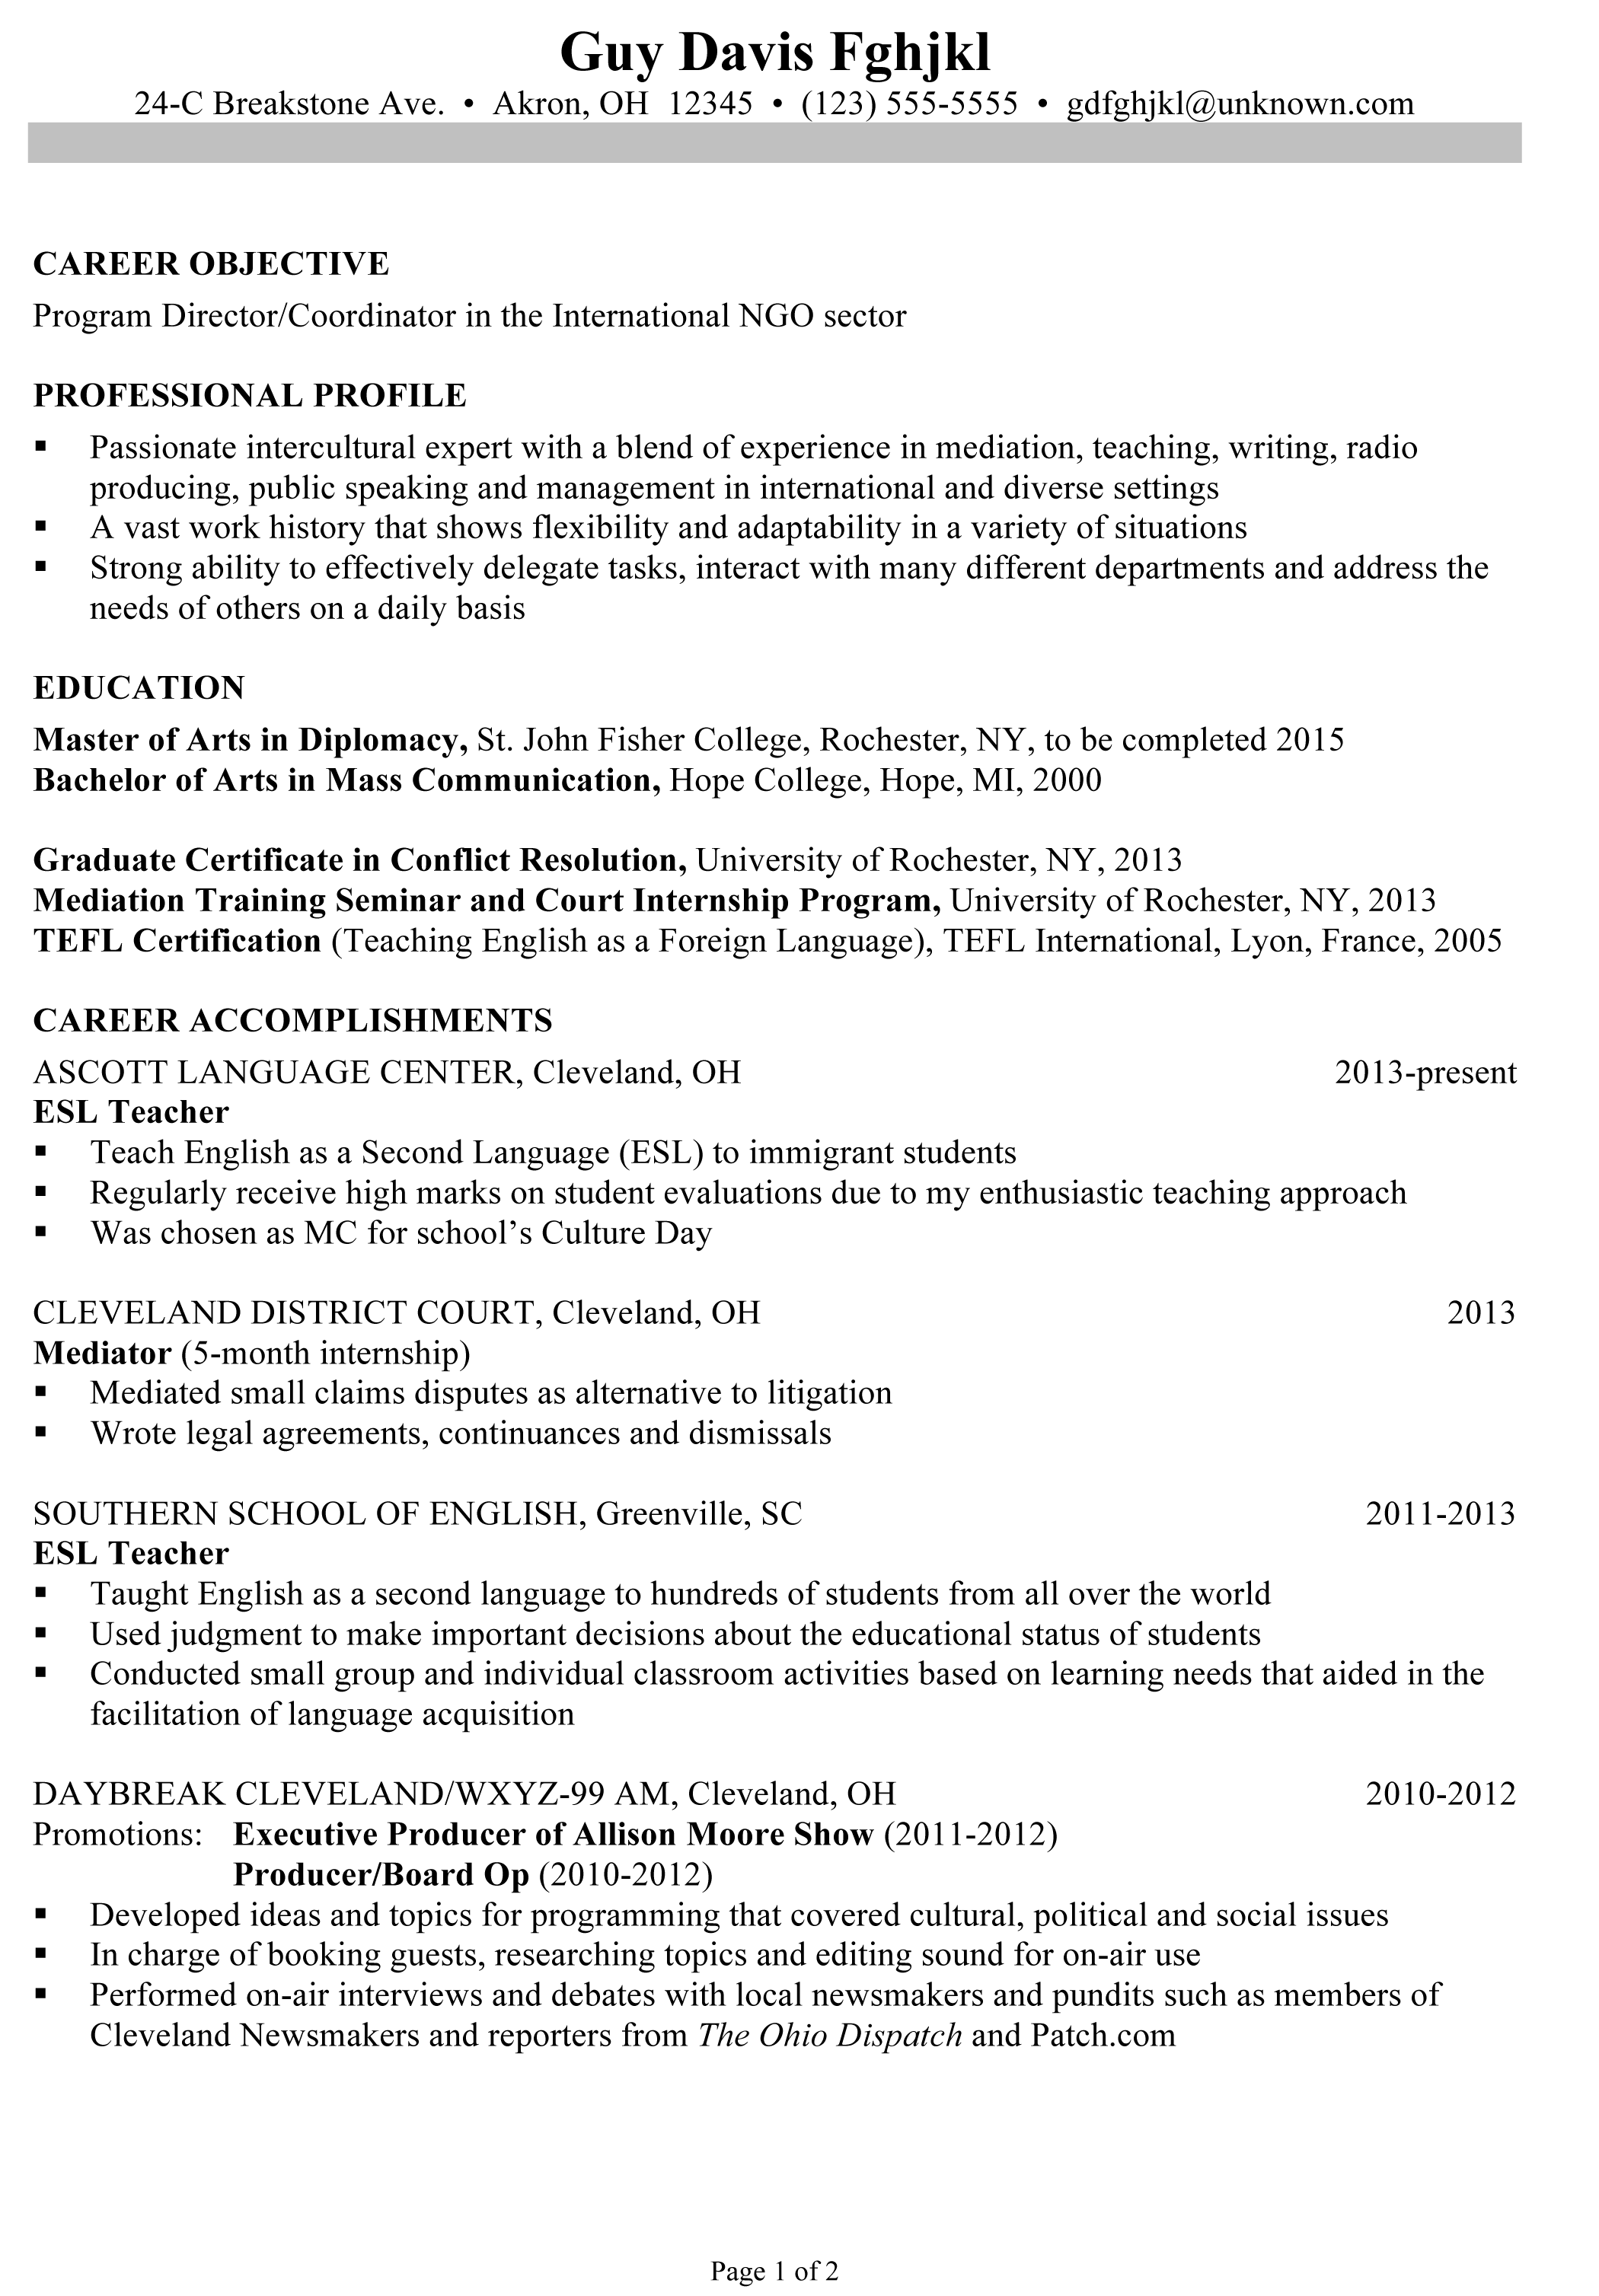 professional summary resume example best templatesample resumes